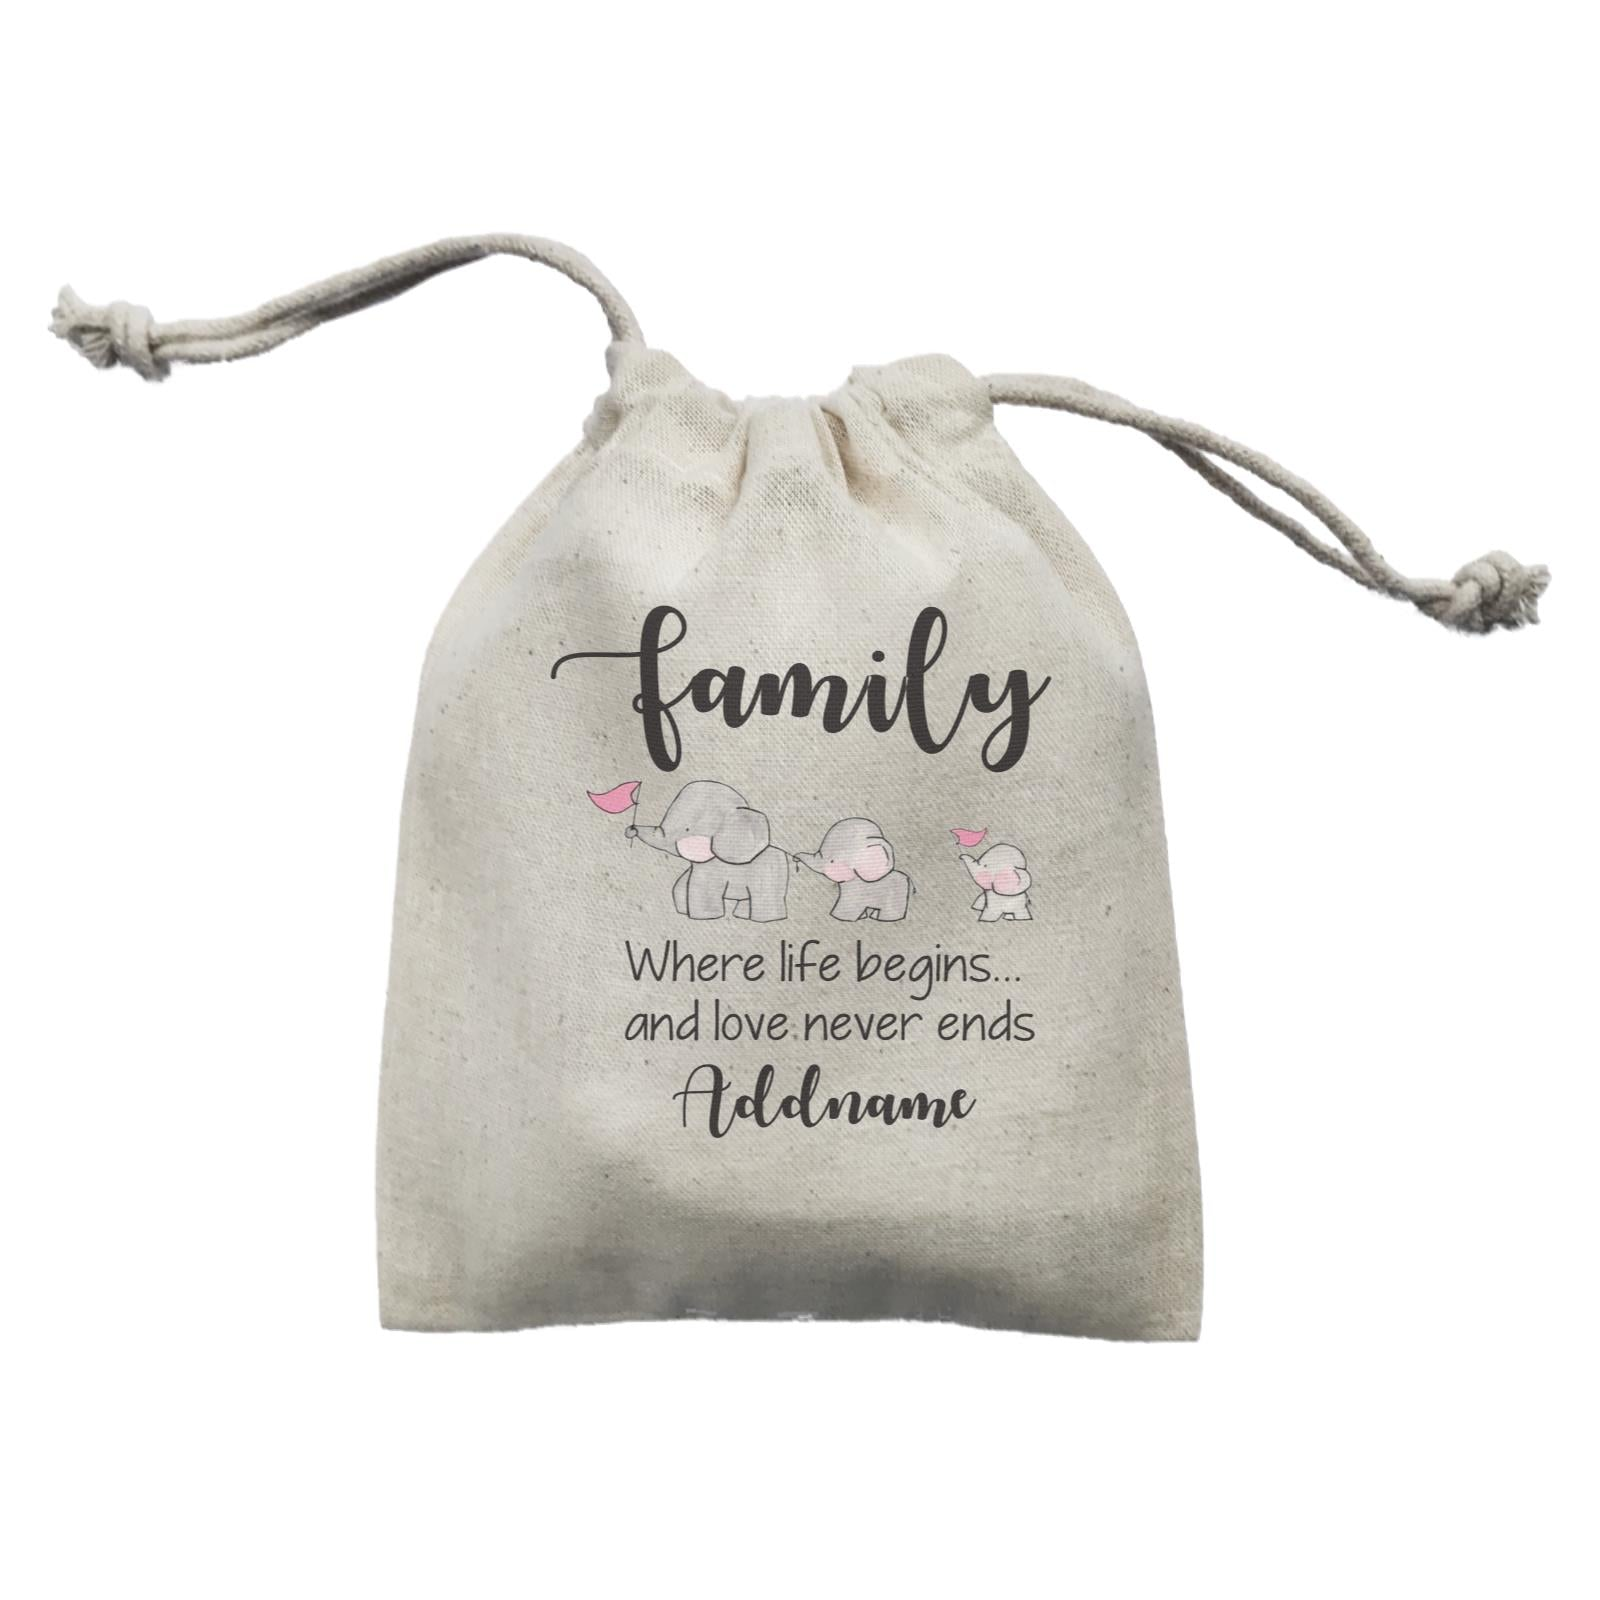 Family Is Everythings Quotes Family Where Life Begins And Love Never Ends Addname Mini Accessories Mini Pouch